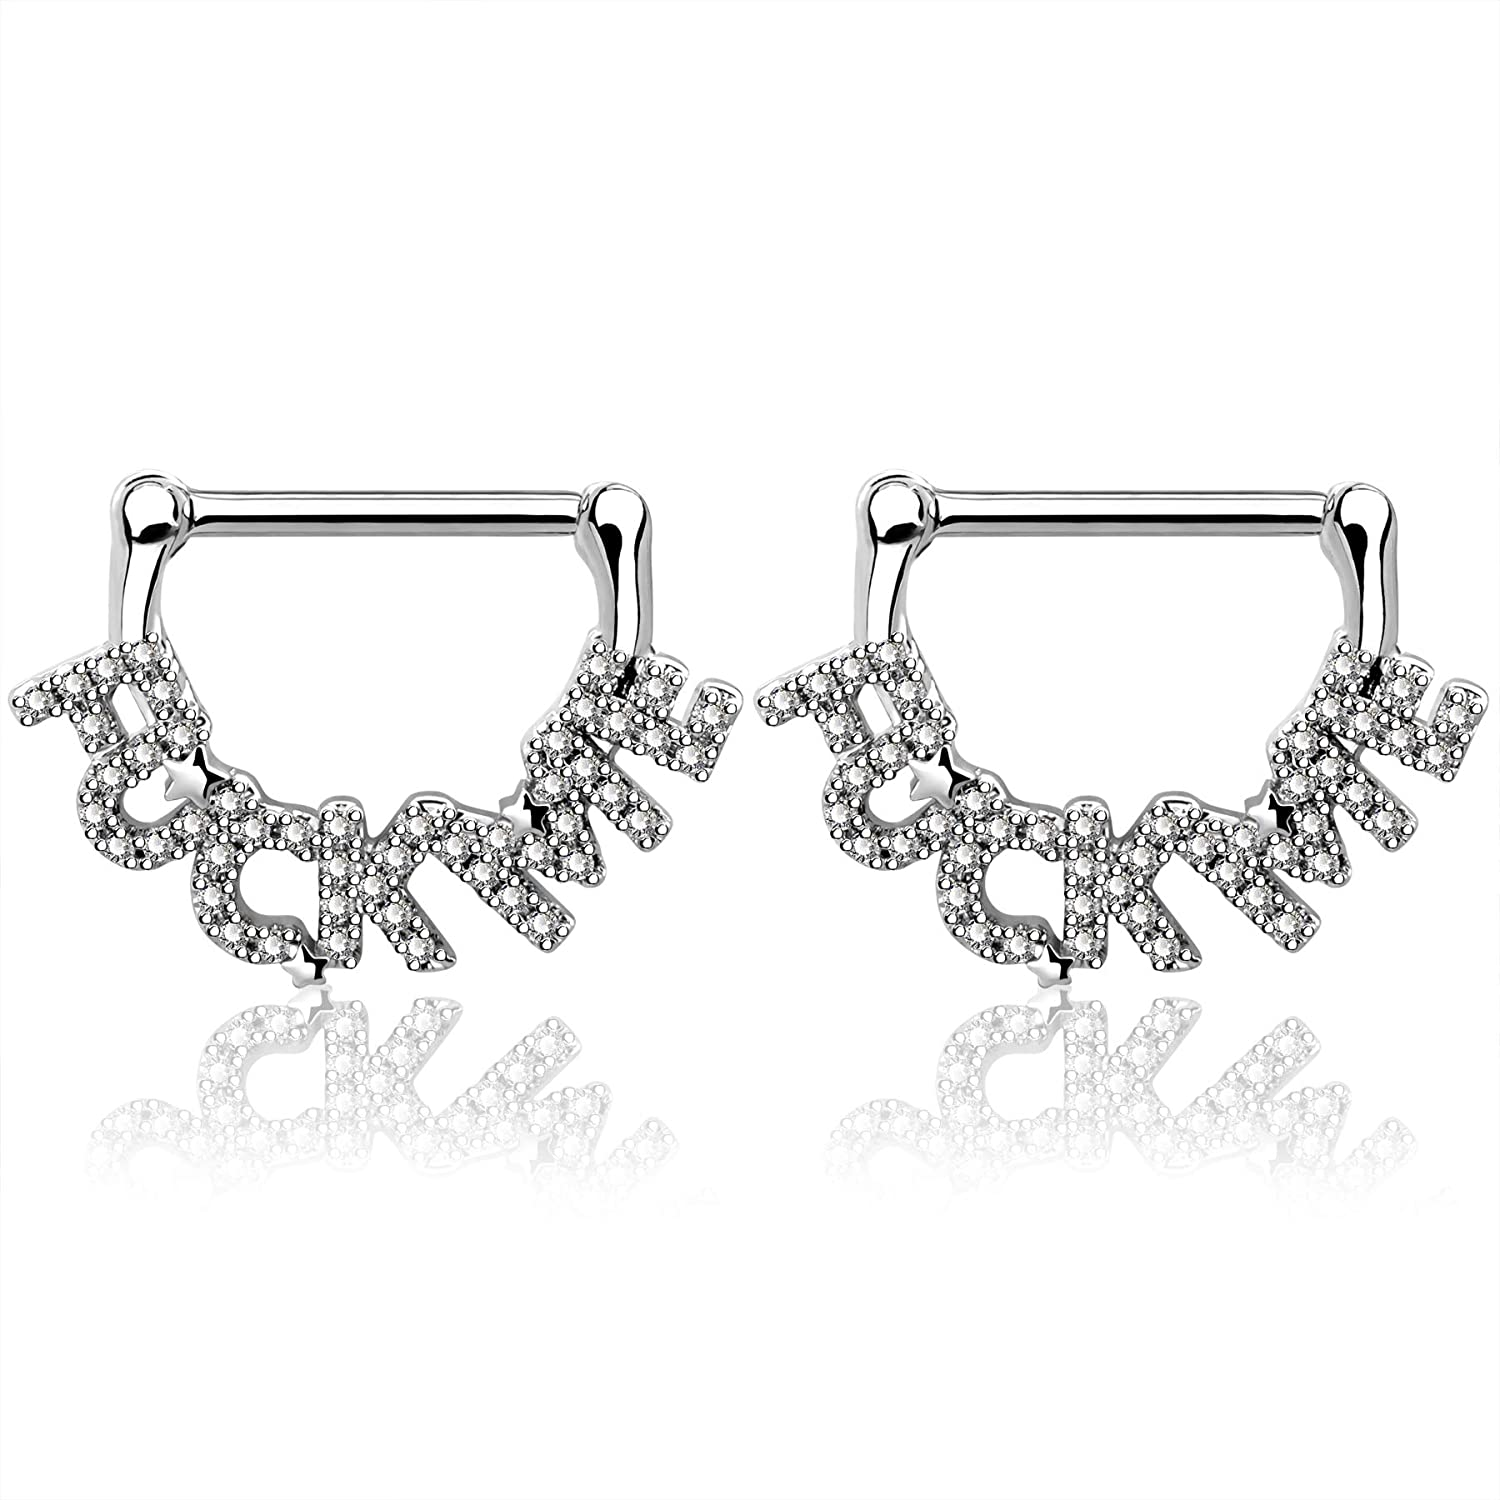 OUFER 2PCS Nipple Rings 14G Stainless Steel Letter Nipplerings with Clear CZ Nipple Piercing Jewelry